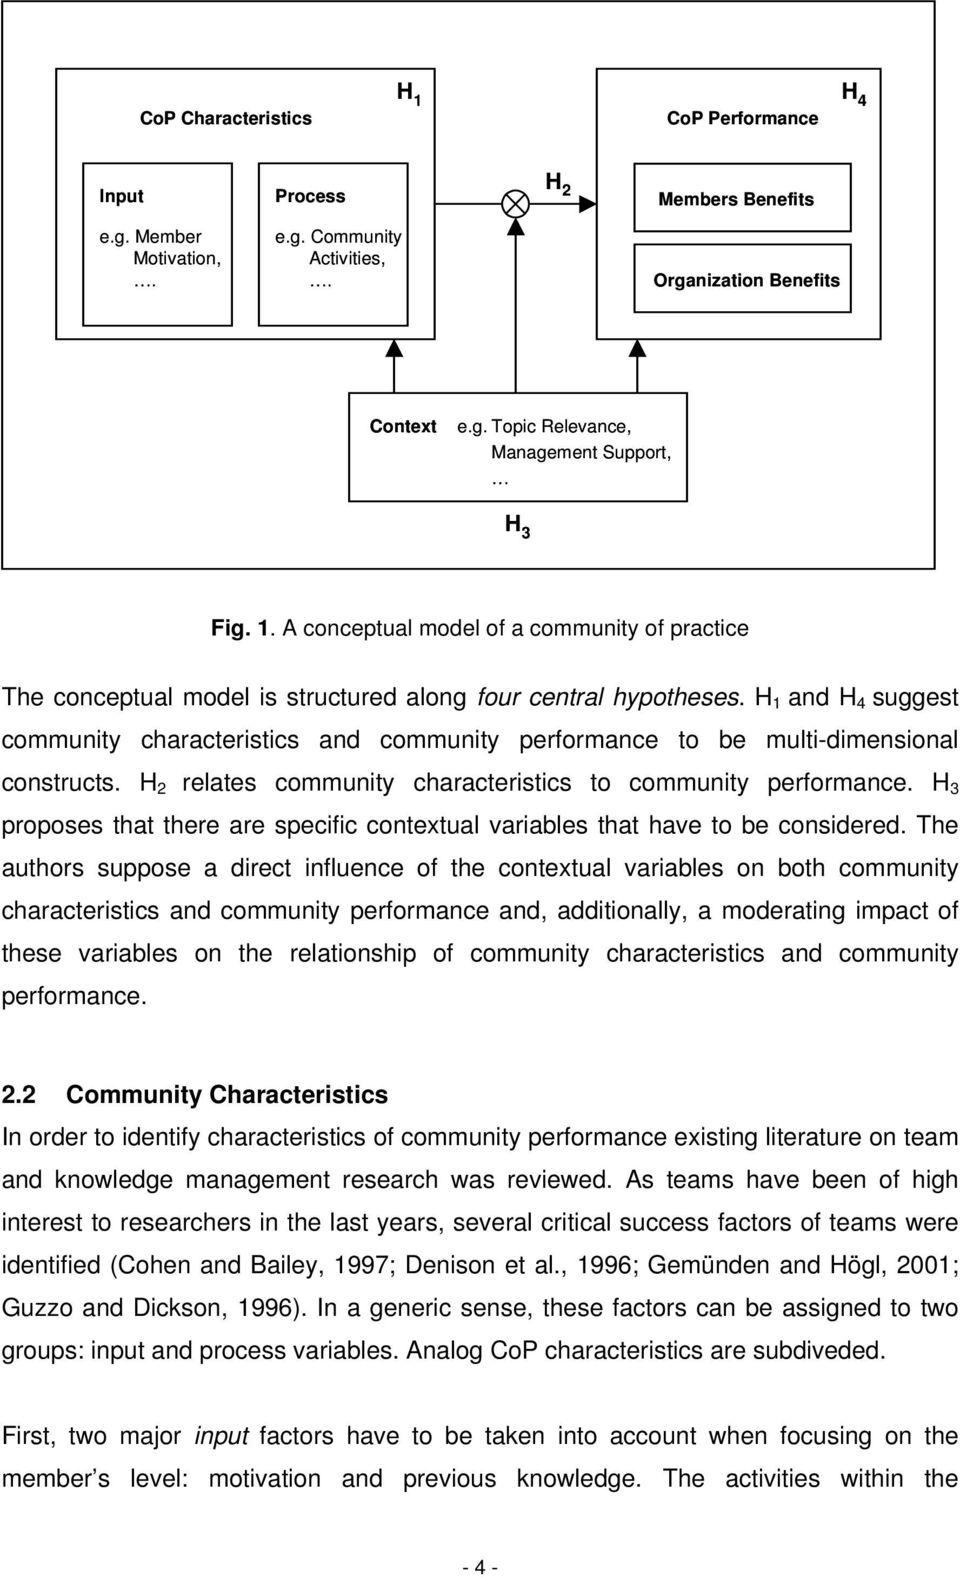 H 1 and H 4 suggest community characteristics and community performance to be multi-dimensional constructs. H 2 relates community characteristics to community performance.